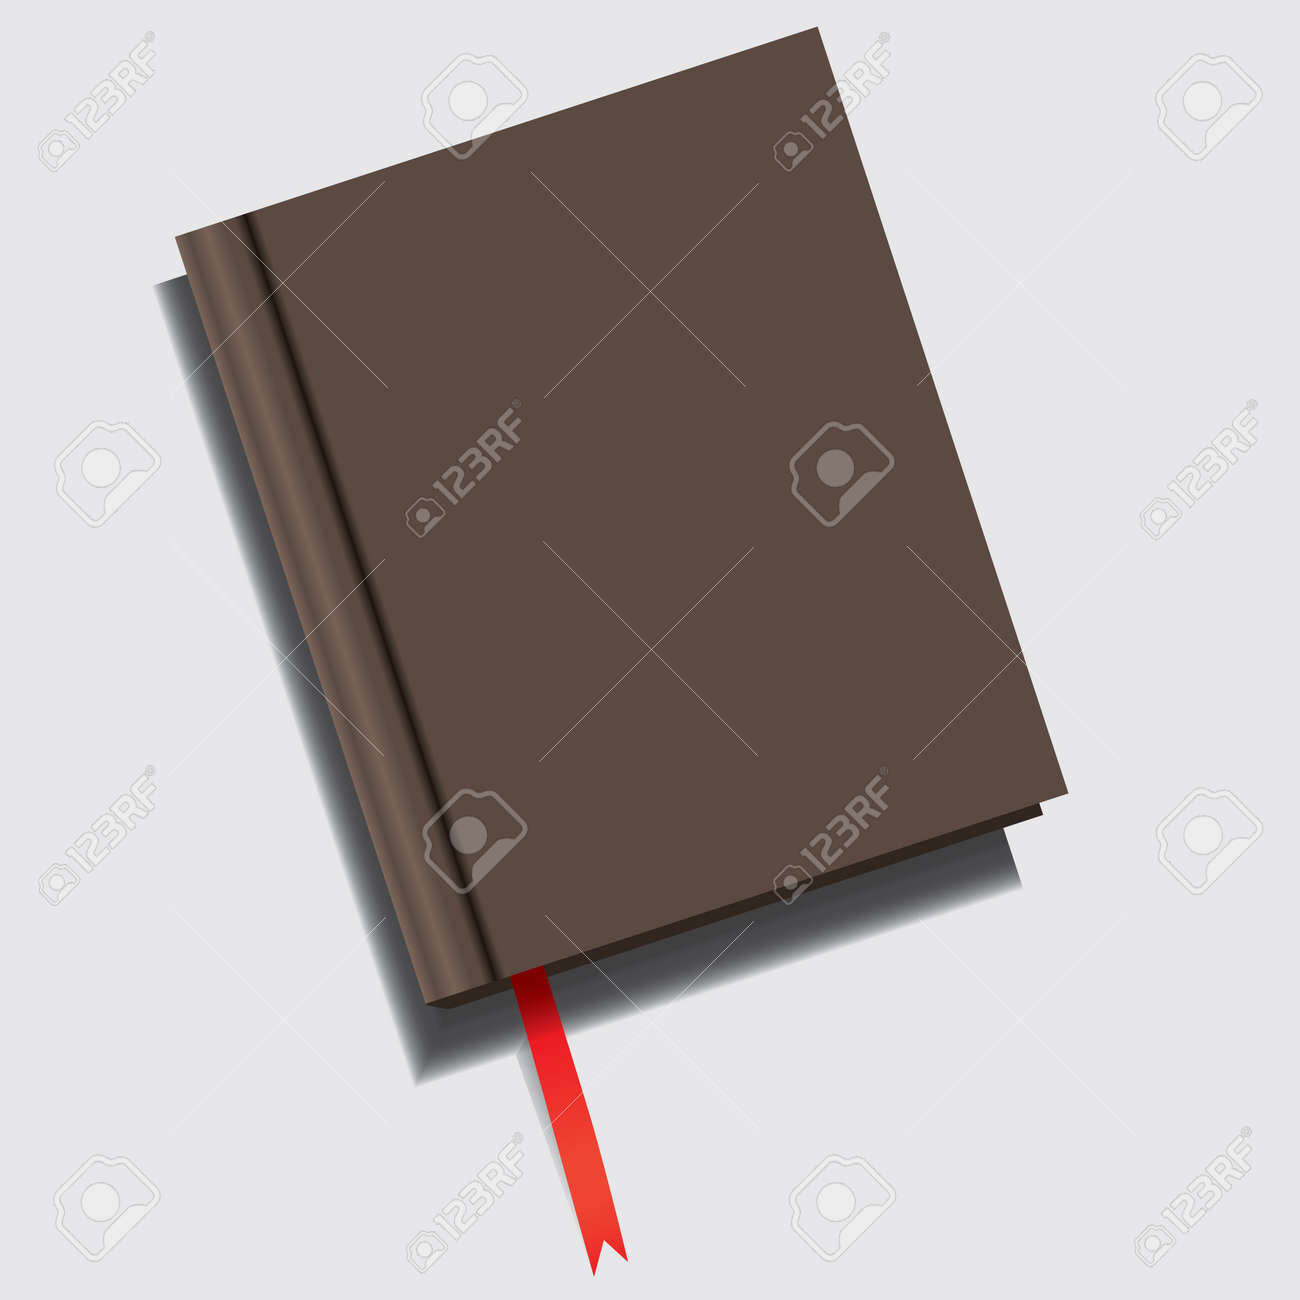 Closed book with a red ribbon-shaped bookmark - 169061383